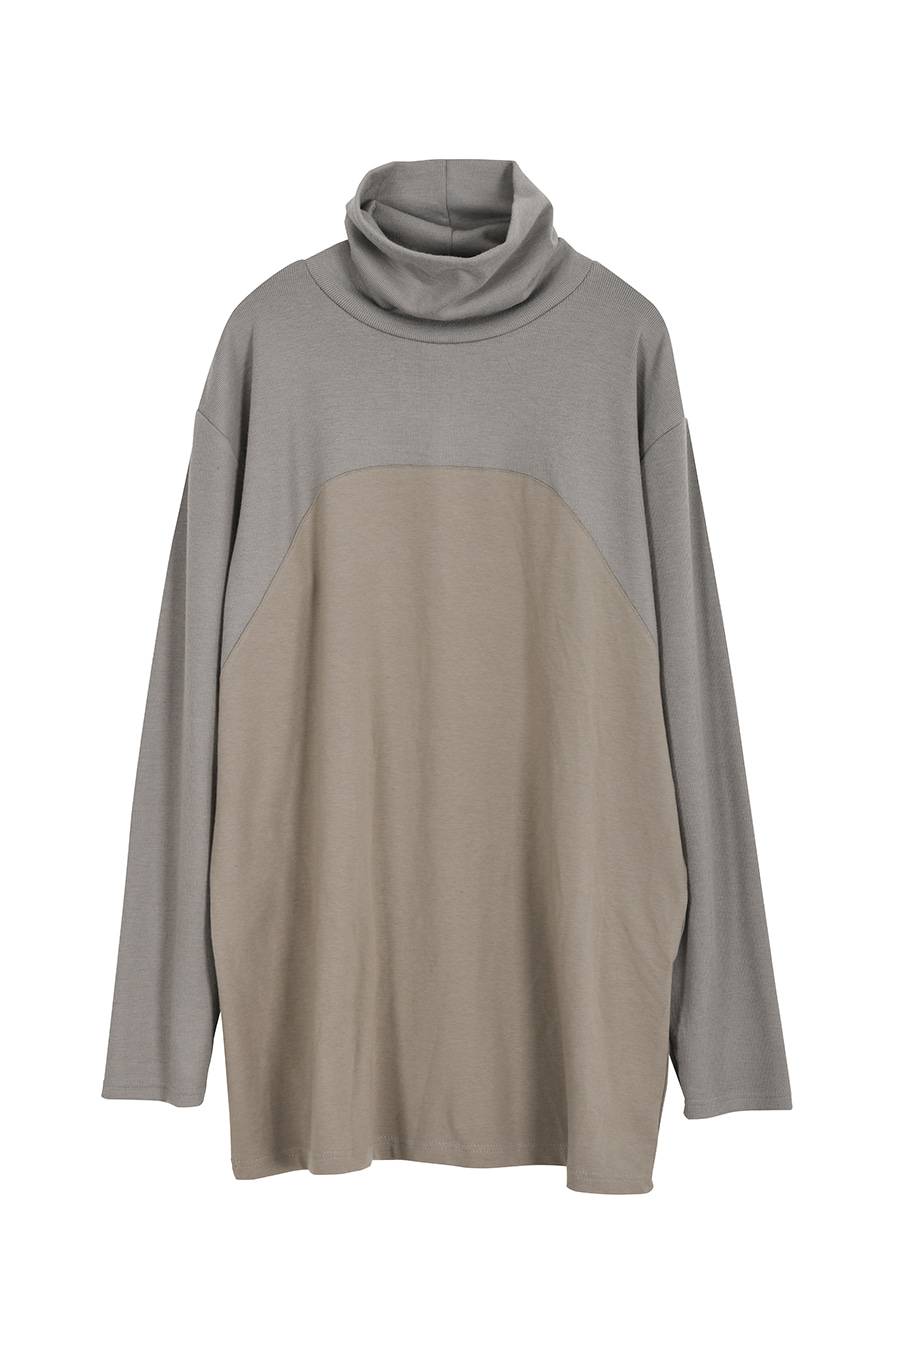 """The Pilgrim"" Double Fabrics Turtleneck - Gray"